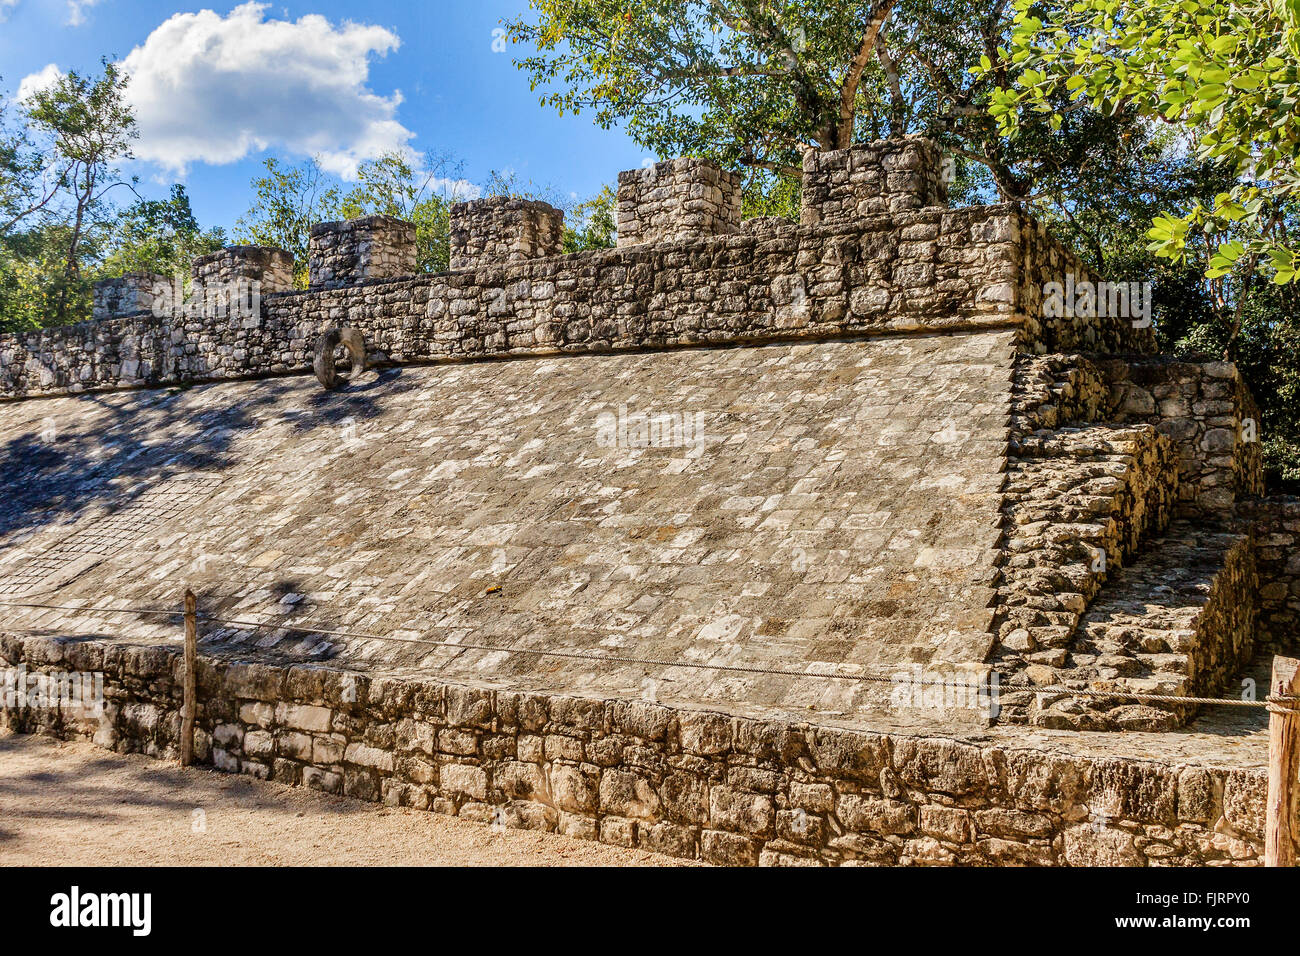 One Ballcourt Coba Yucatan Mexico - Stock Image